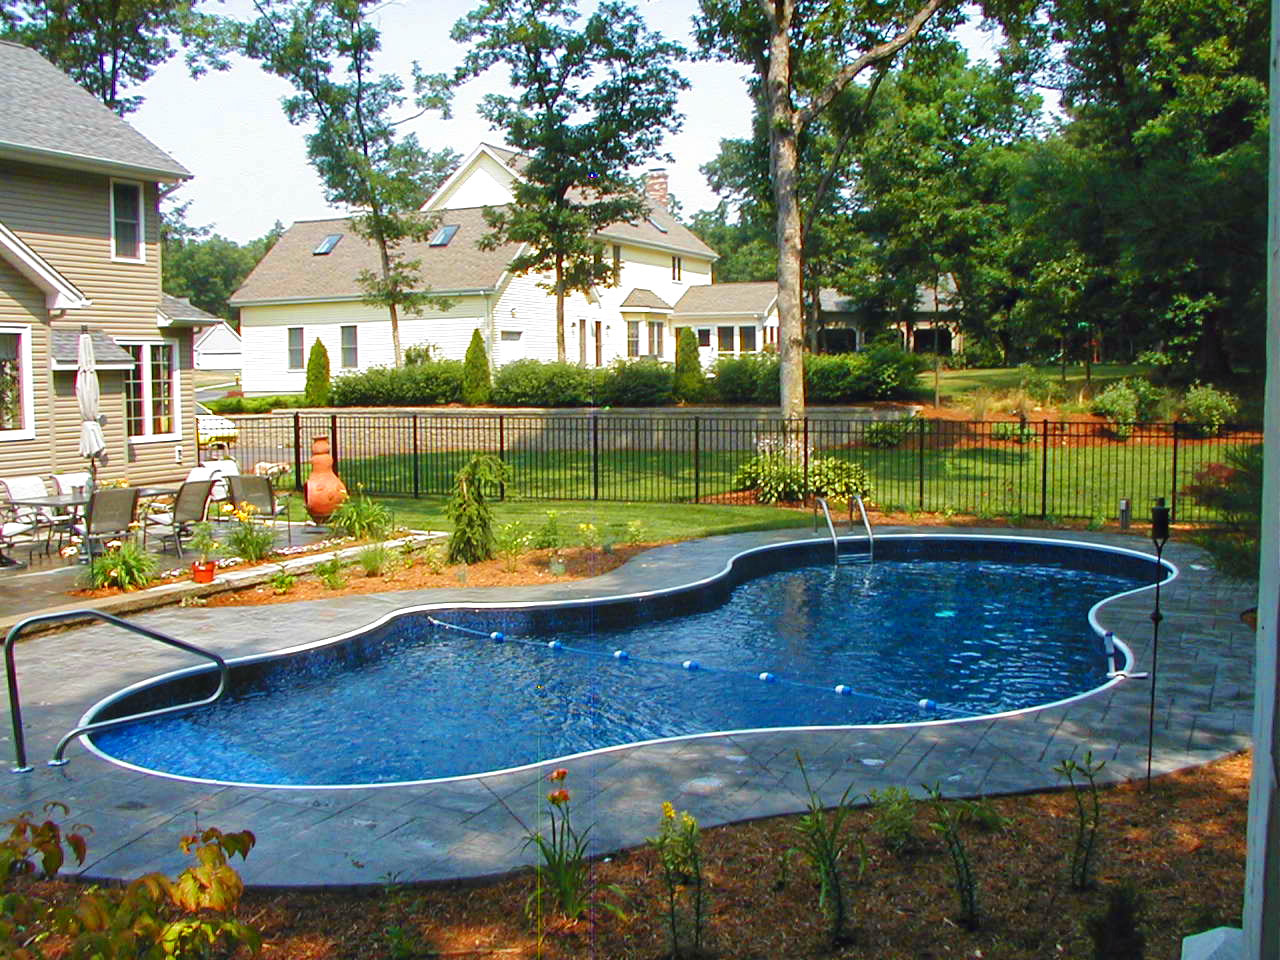 Tanguay pools swimming pool design installation repair for Pictures of a pool